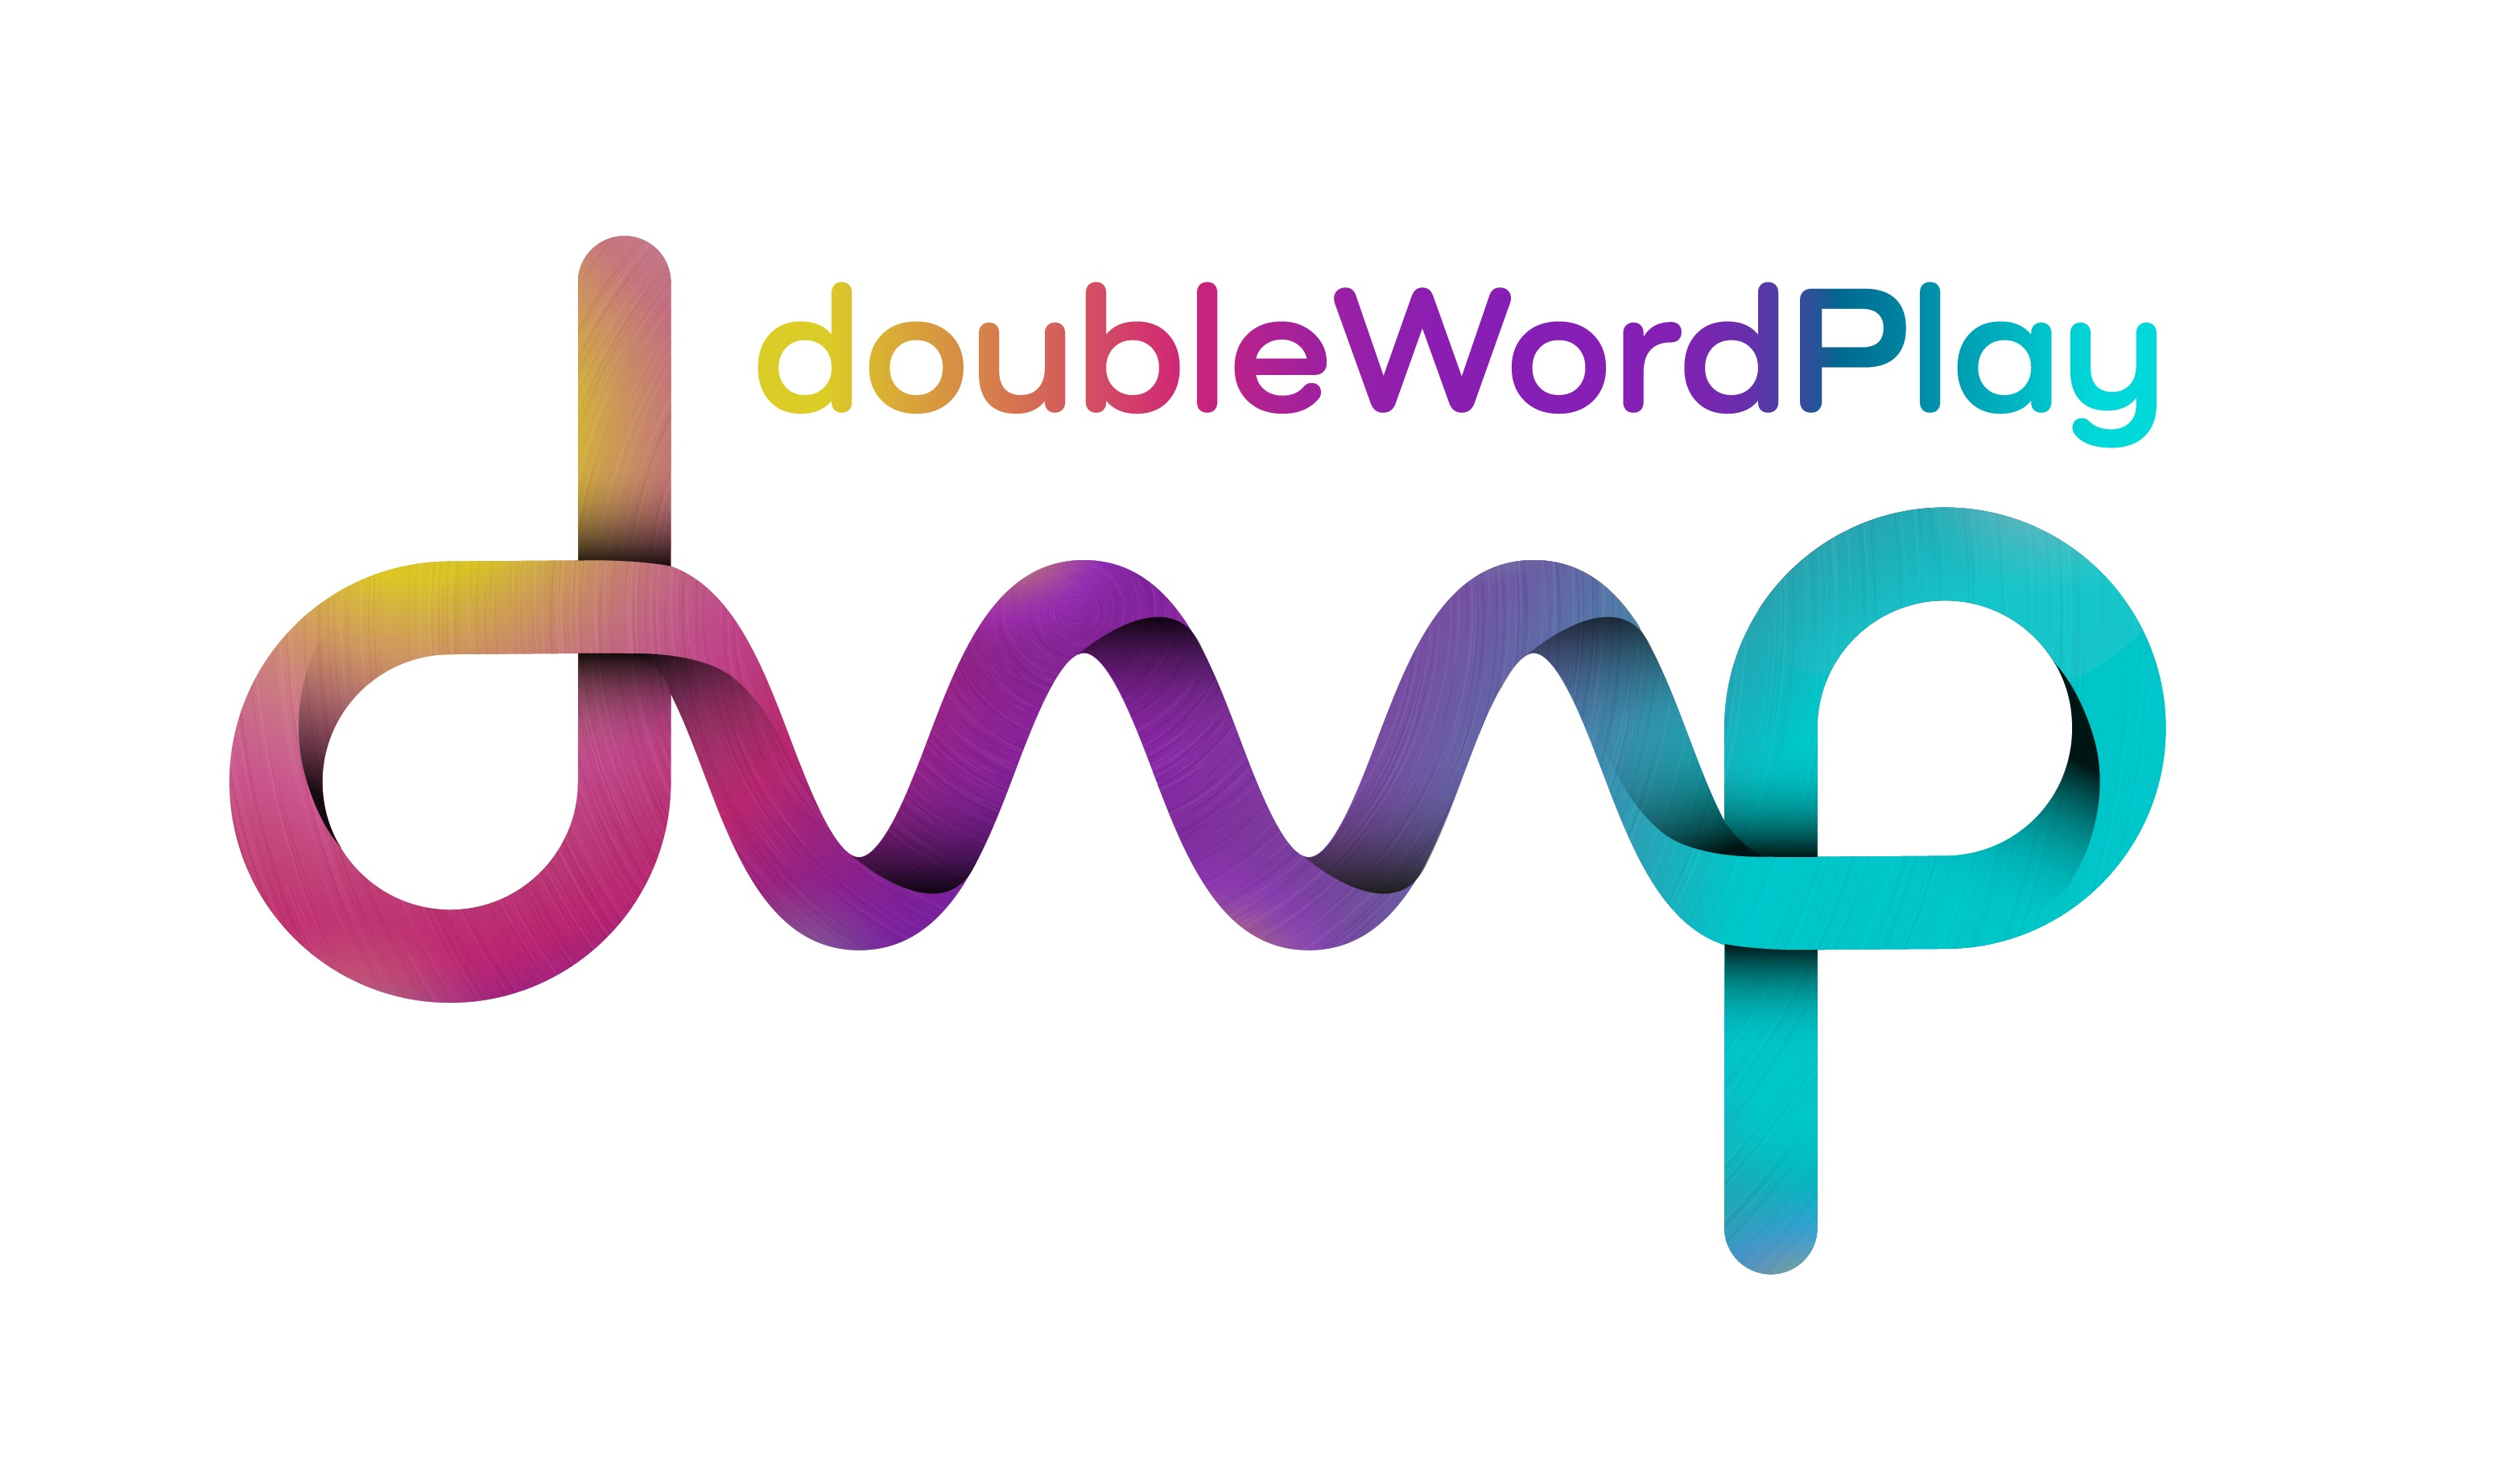 doubleWordPlay all the way!